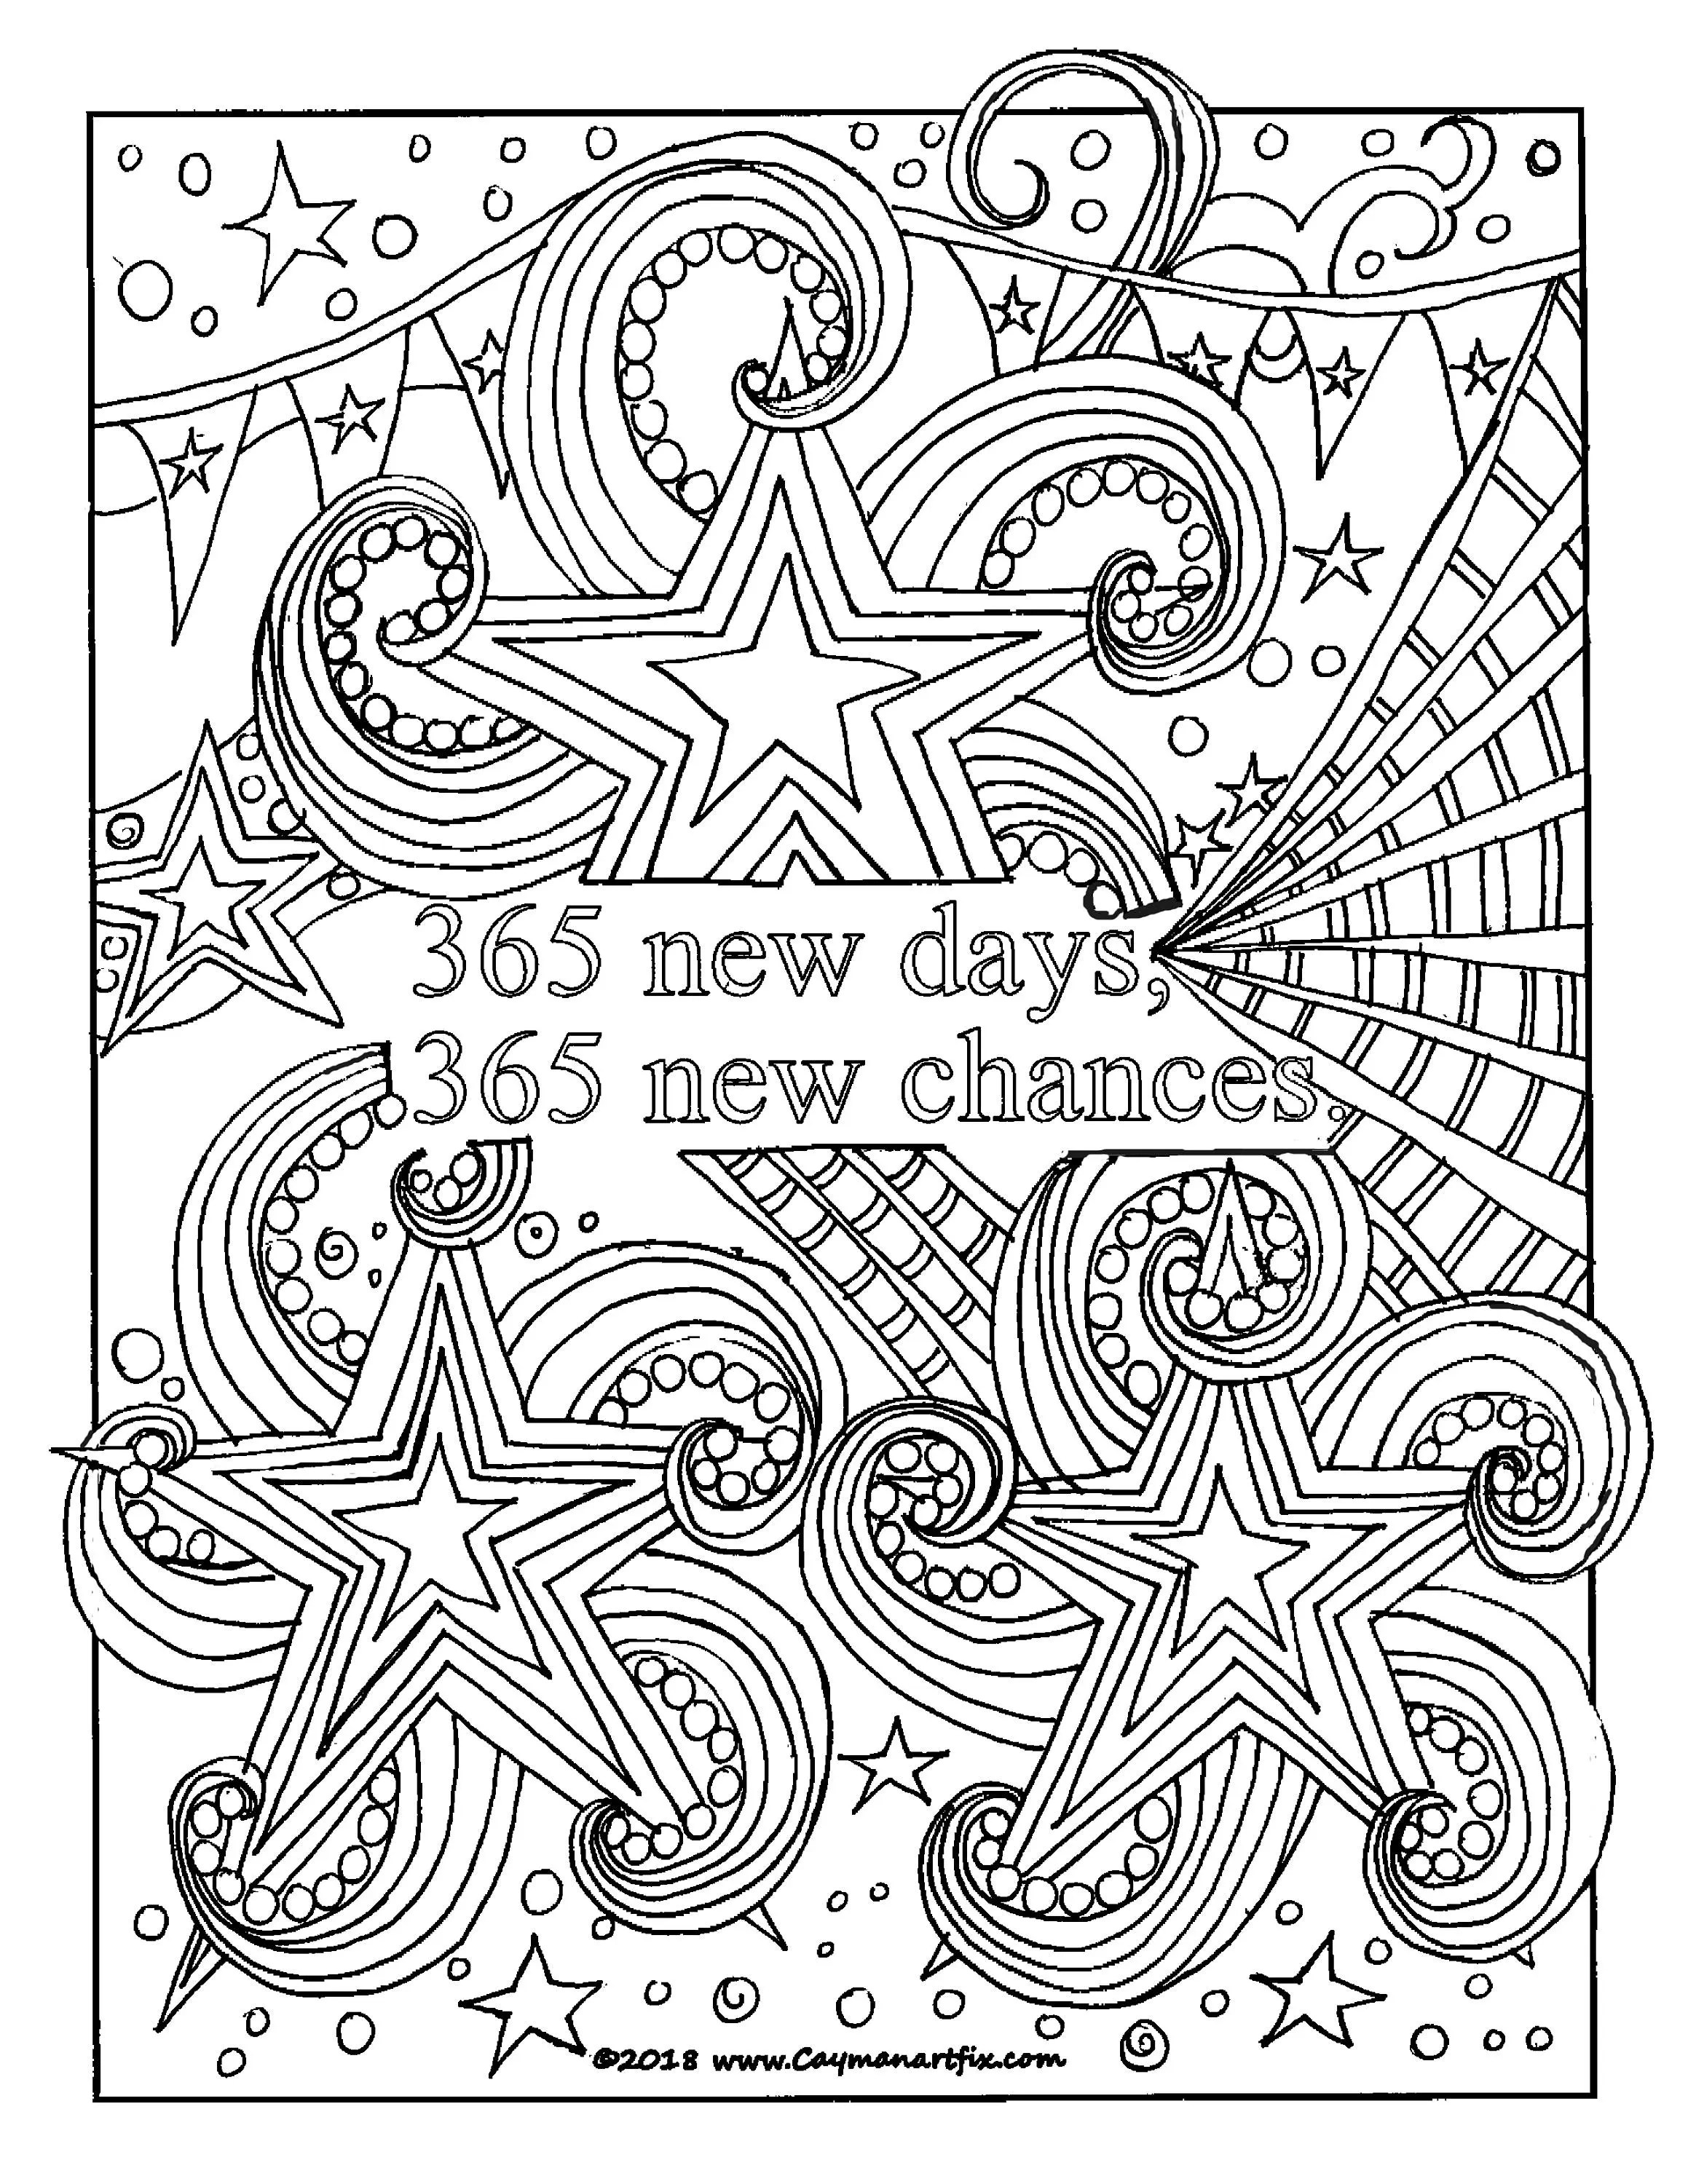 Inspirational Quote Coloring Page Motivational Adult